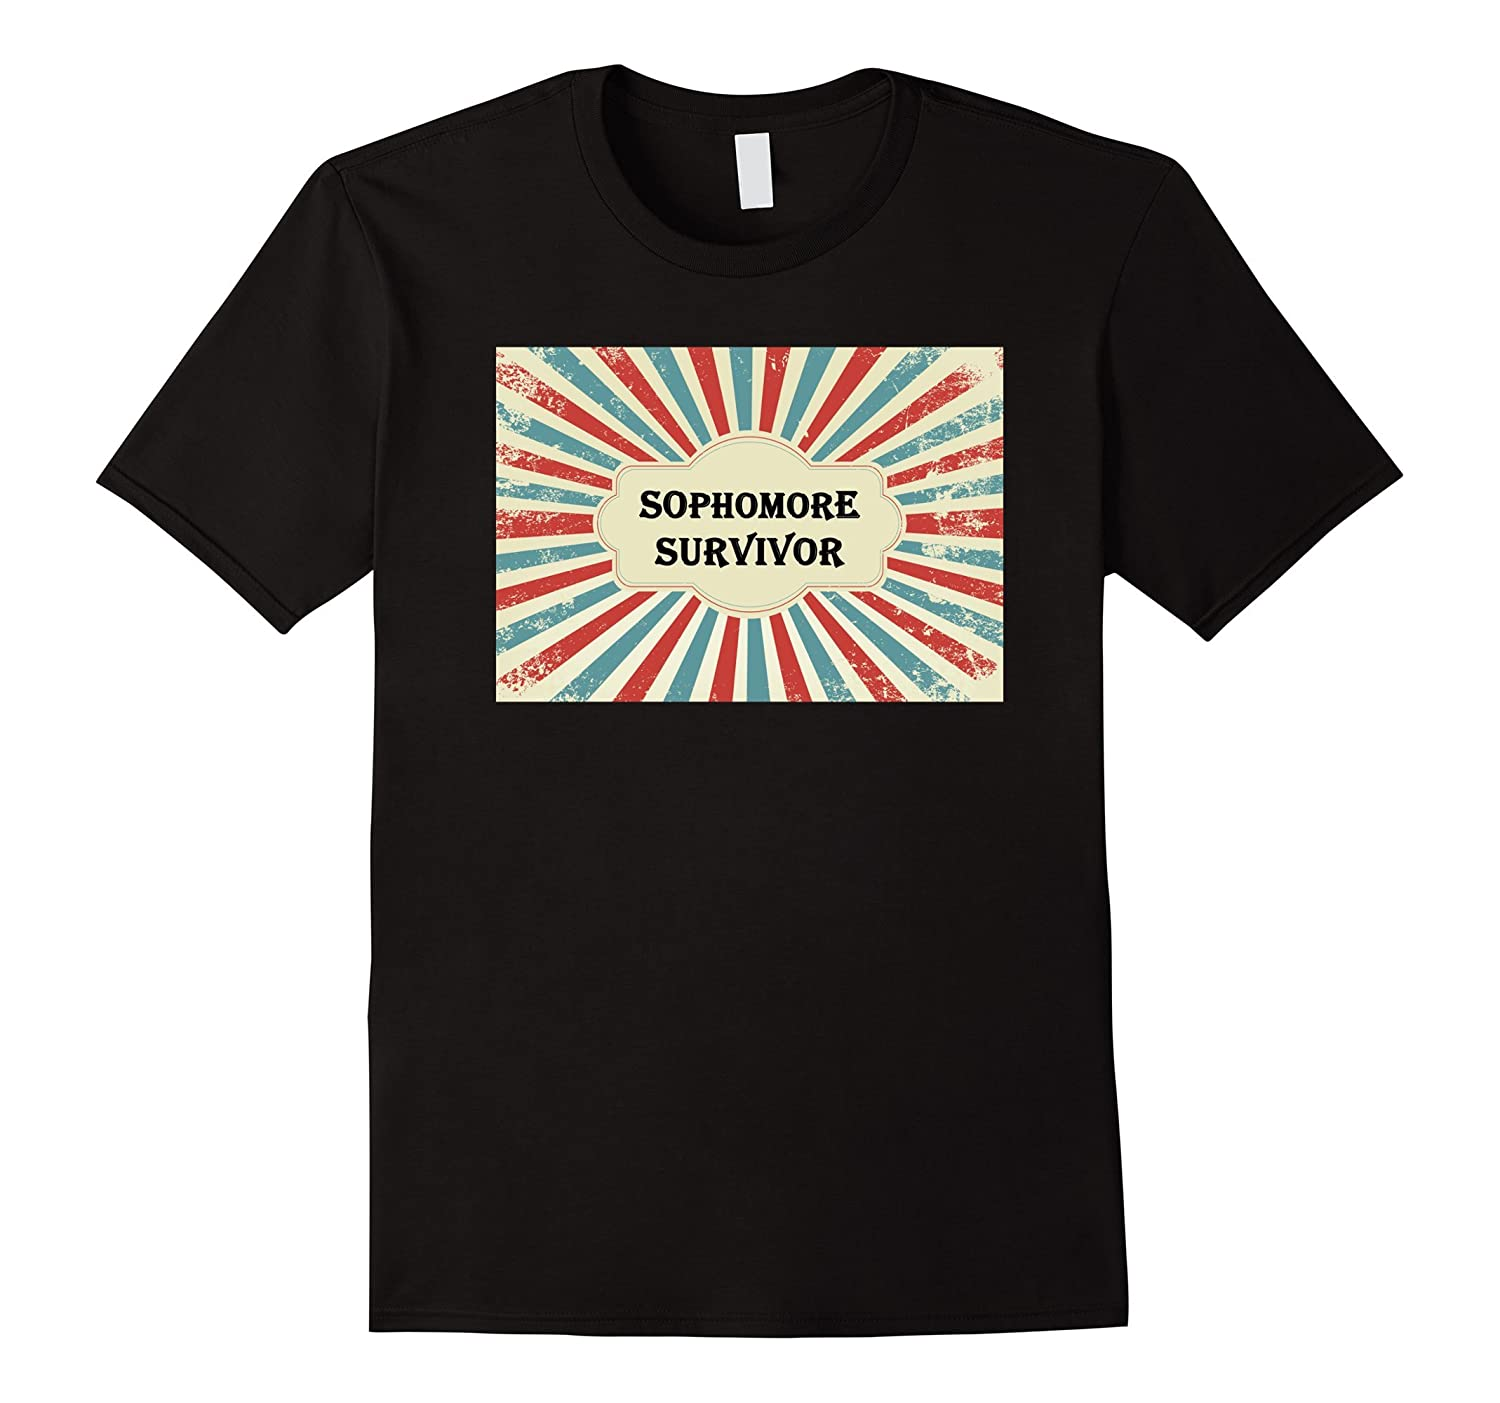 Funny back to school sophomore survivor graphic t shirt for Shirts with graphics on the back